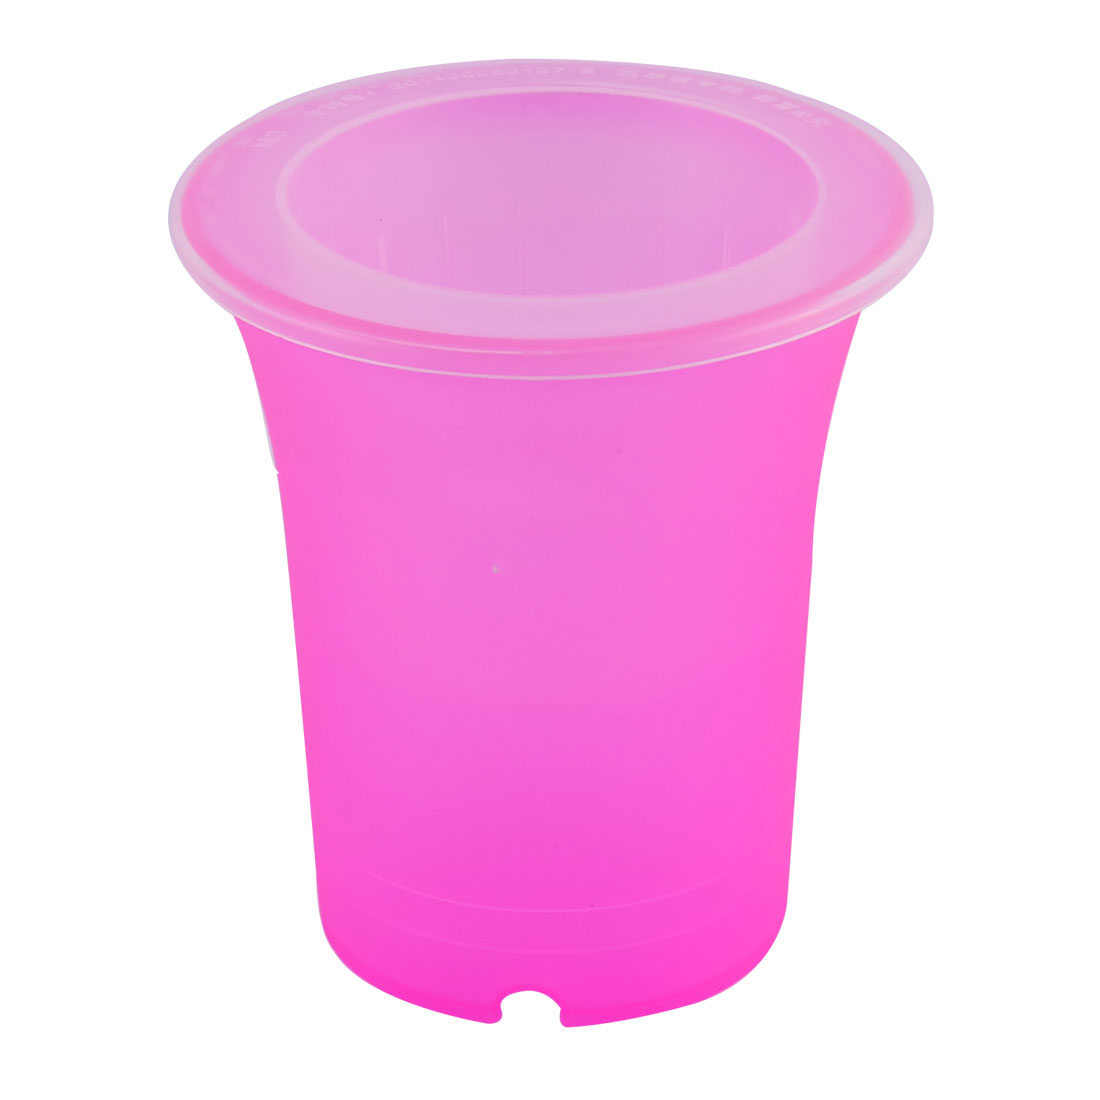 Office Garden Plastic Self Watering Planter Container Flowerpot Fuchsia